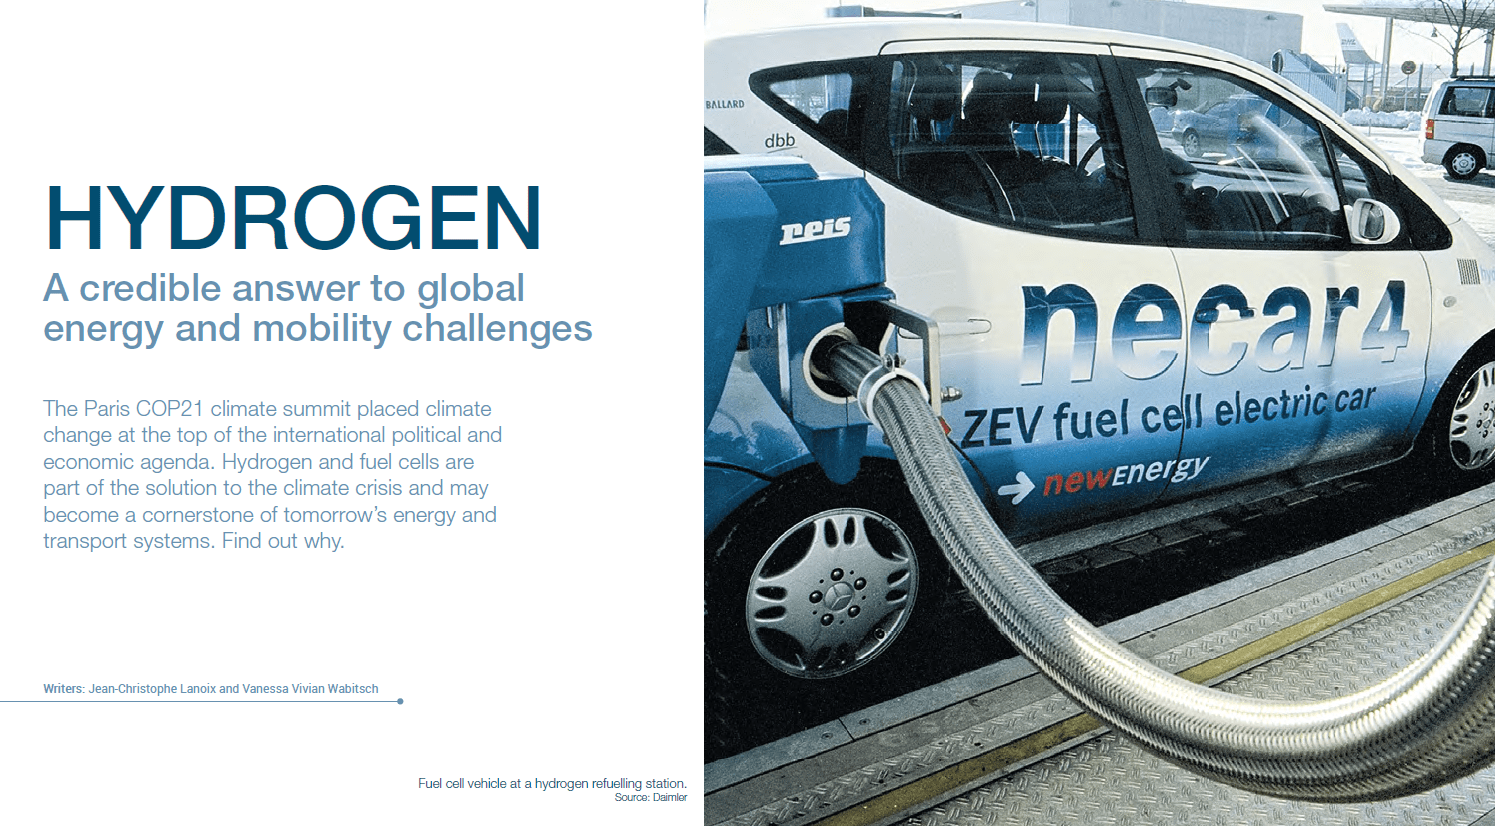 Hydrogen Is A Credible Answer To Global Energy And Mobility Challenges